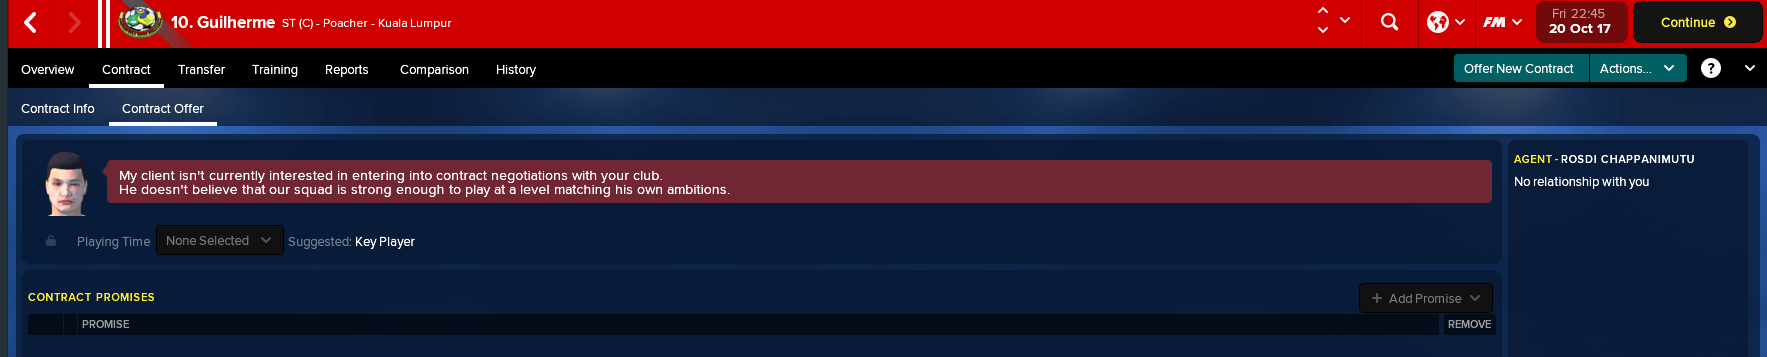 5 things to do when you win promotion FM18